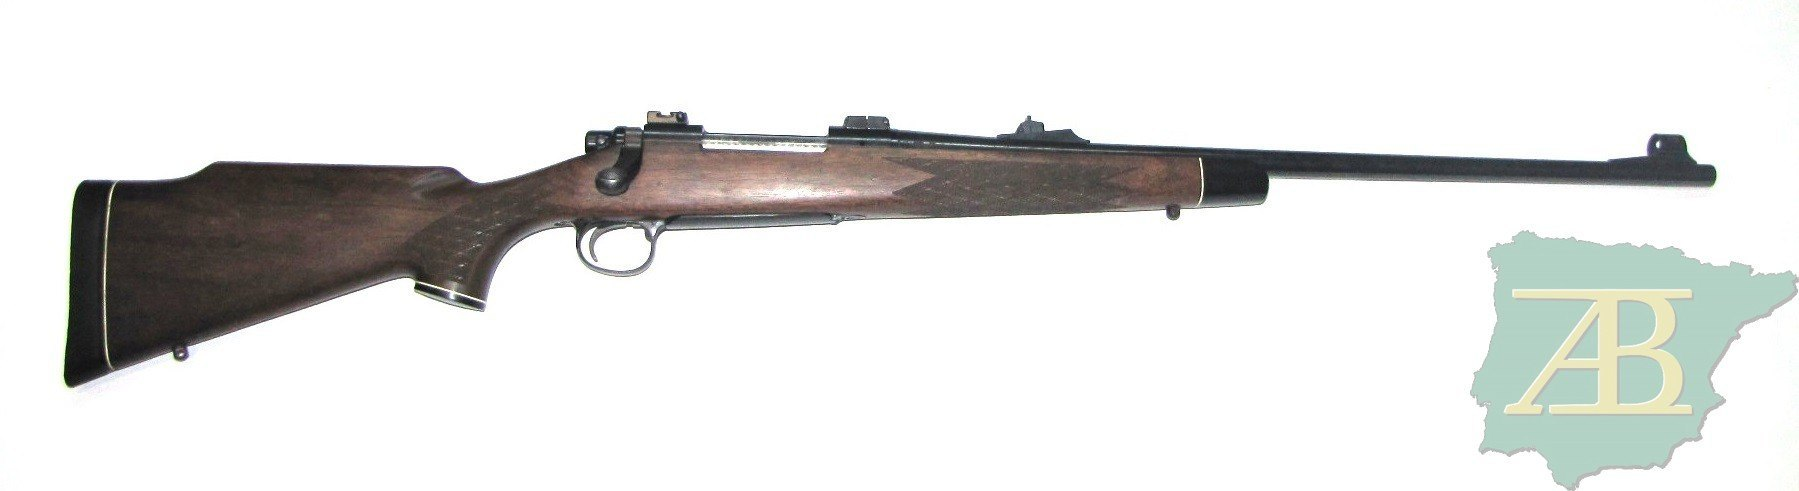 RIFLE DE CERROJO DE CAZA REMINGTON 7MM REM MAG Ref. 4186